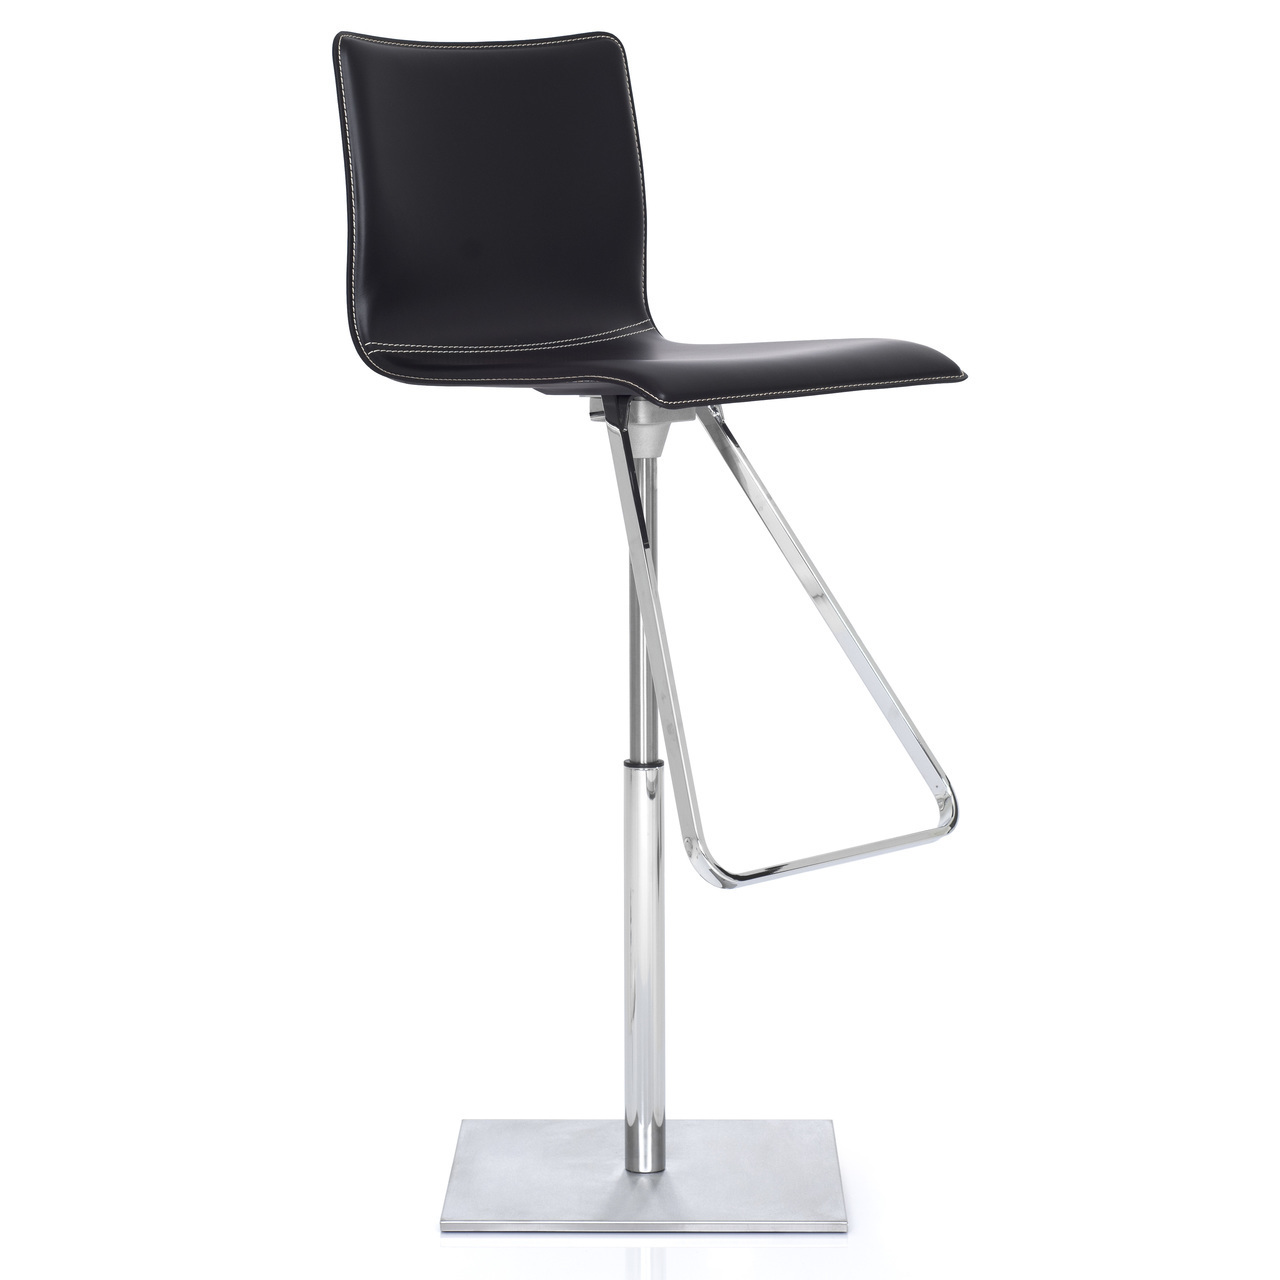 Super Toto Bar Stool Chrome Base Andrewgaddart Wooden Chair Designs For Living Room Andrewgaddartcom